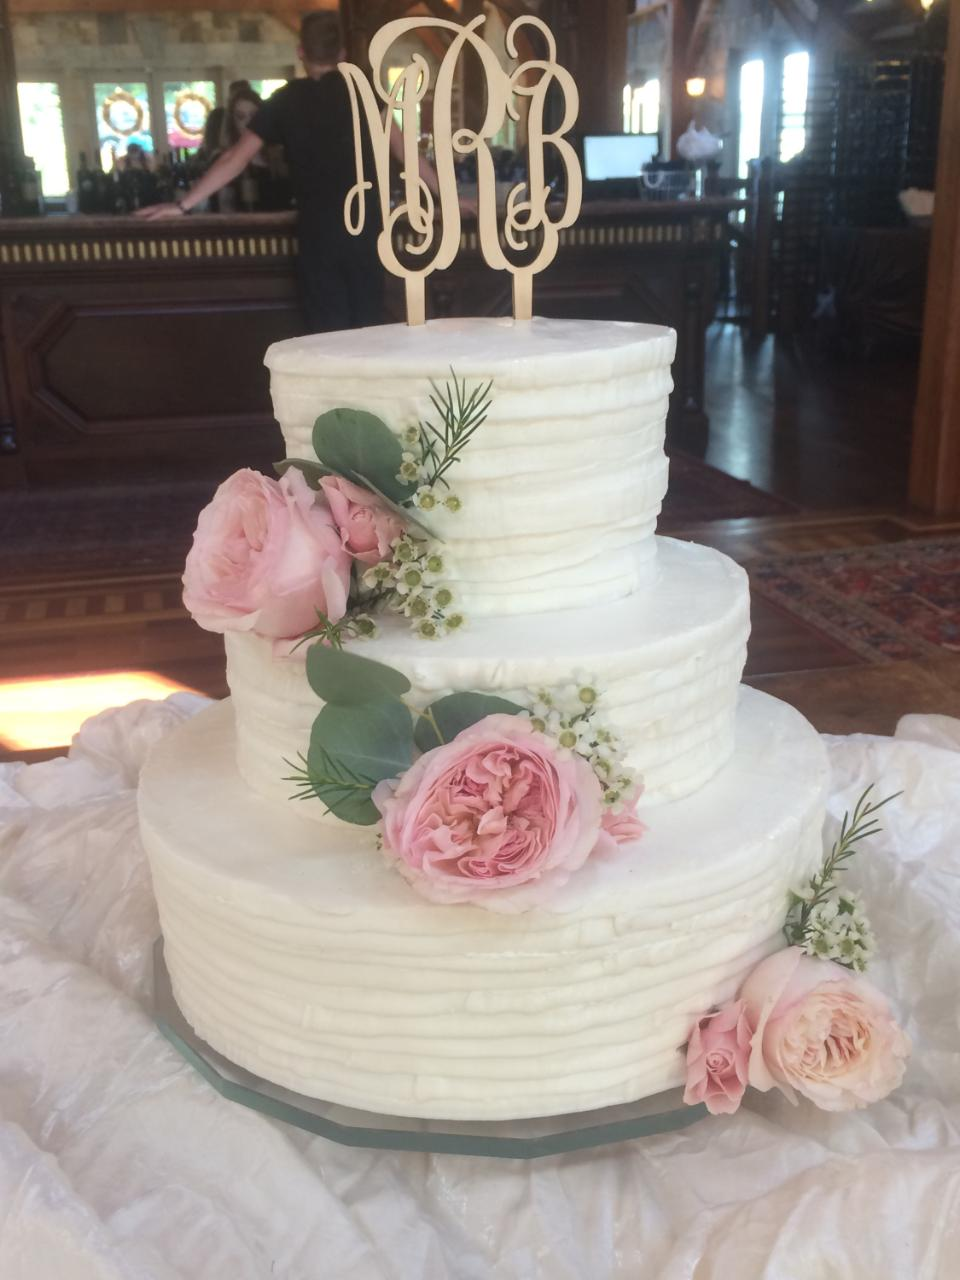 three tiered wedding cake with flowers and a monogram cake topper